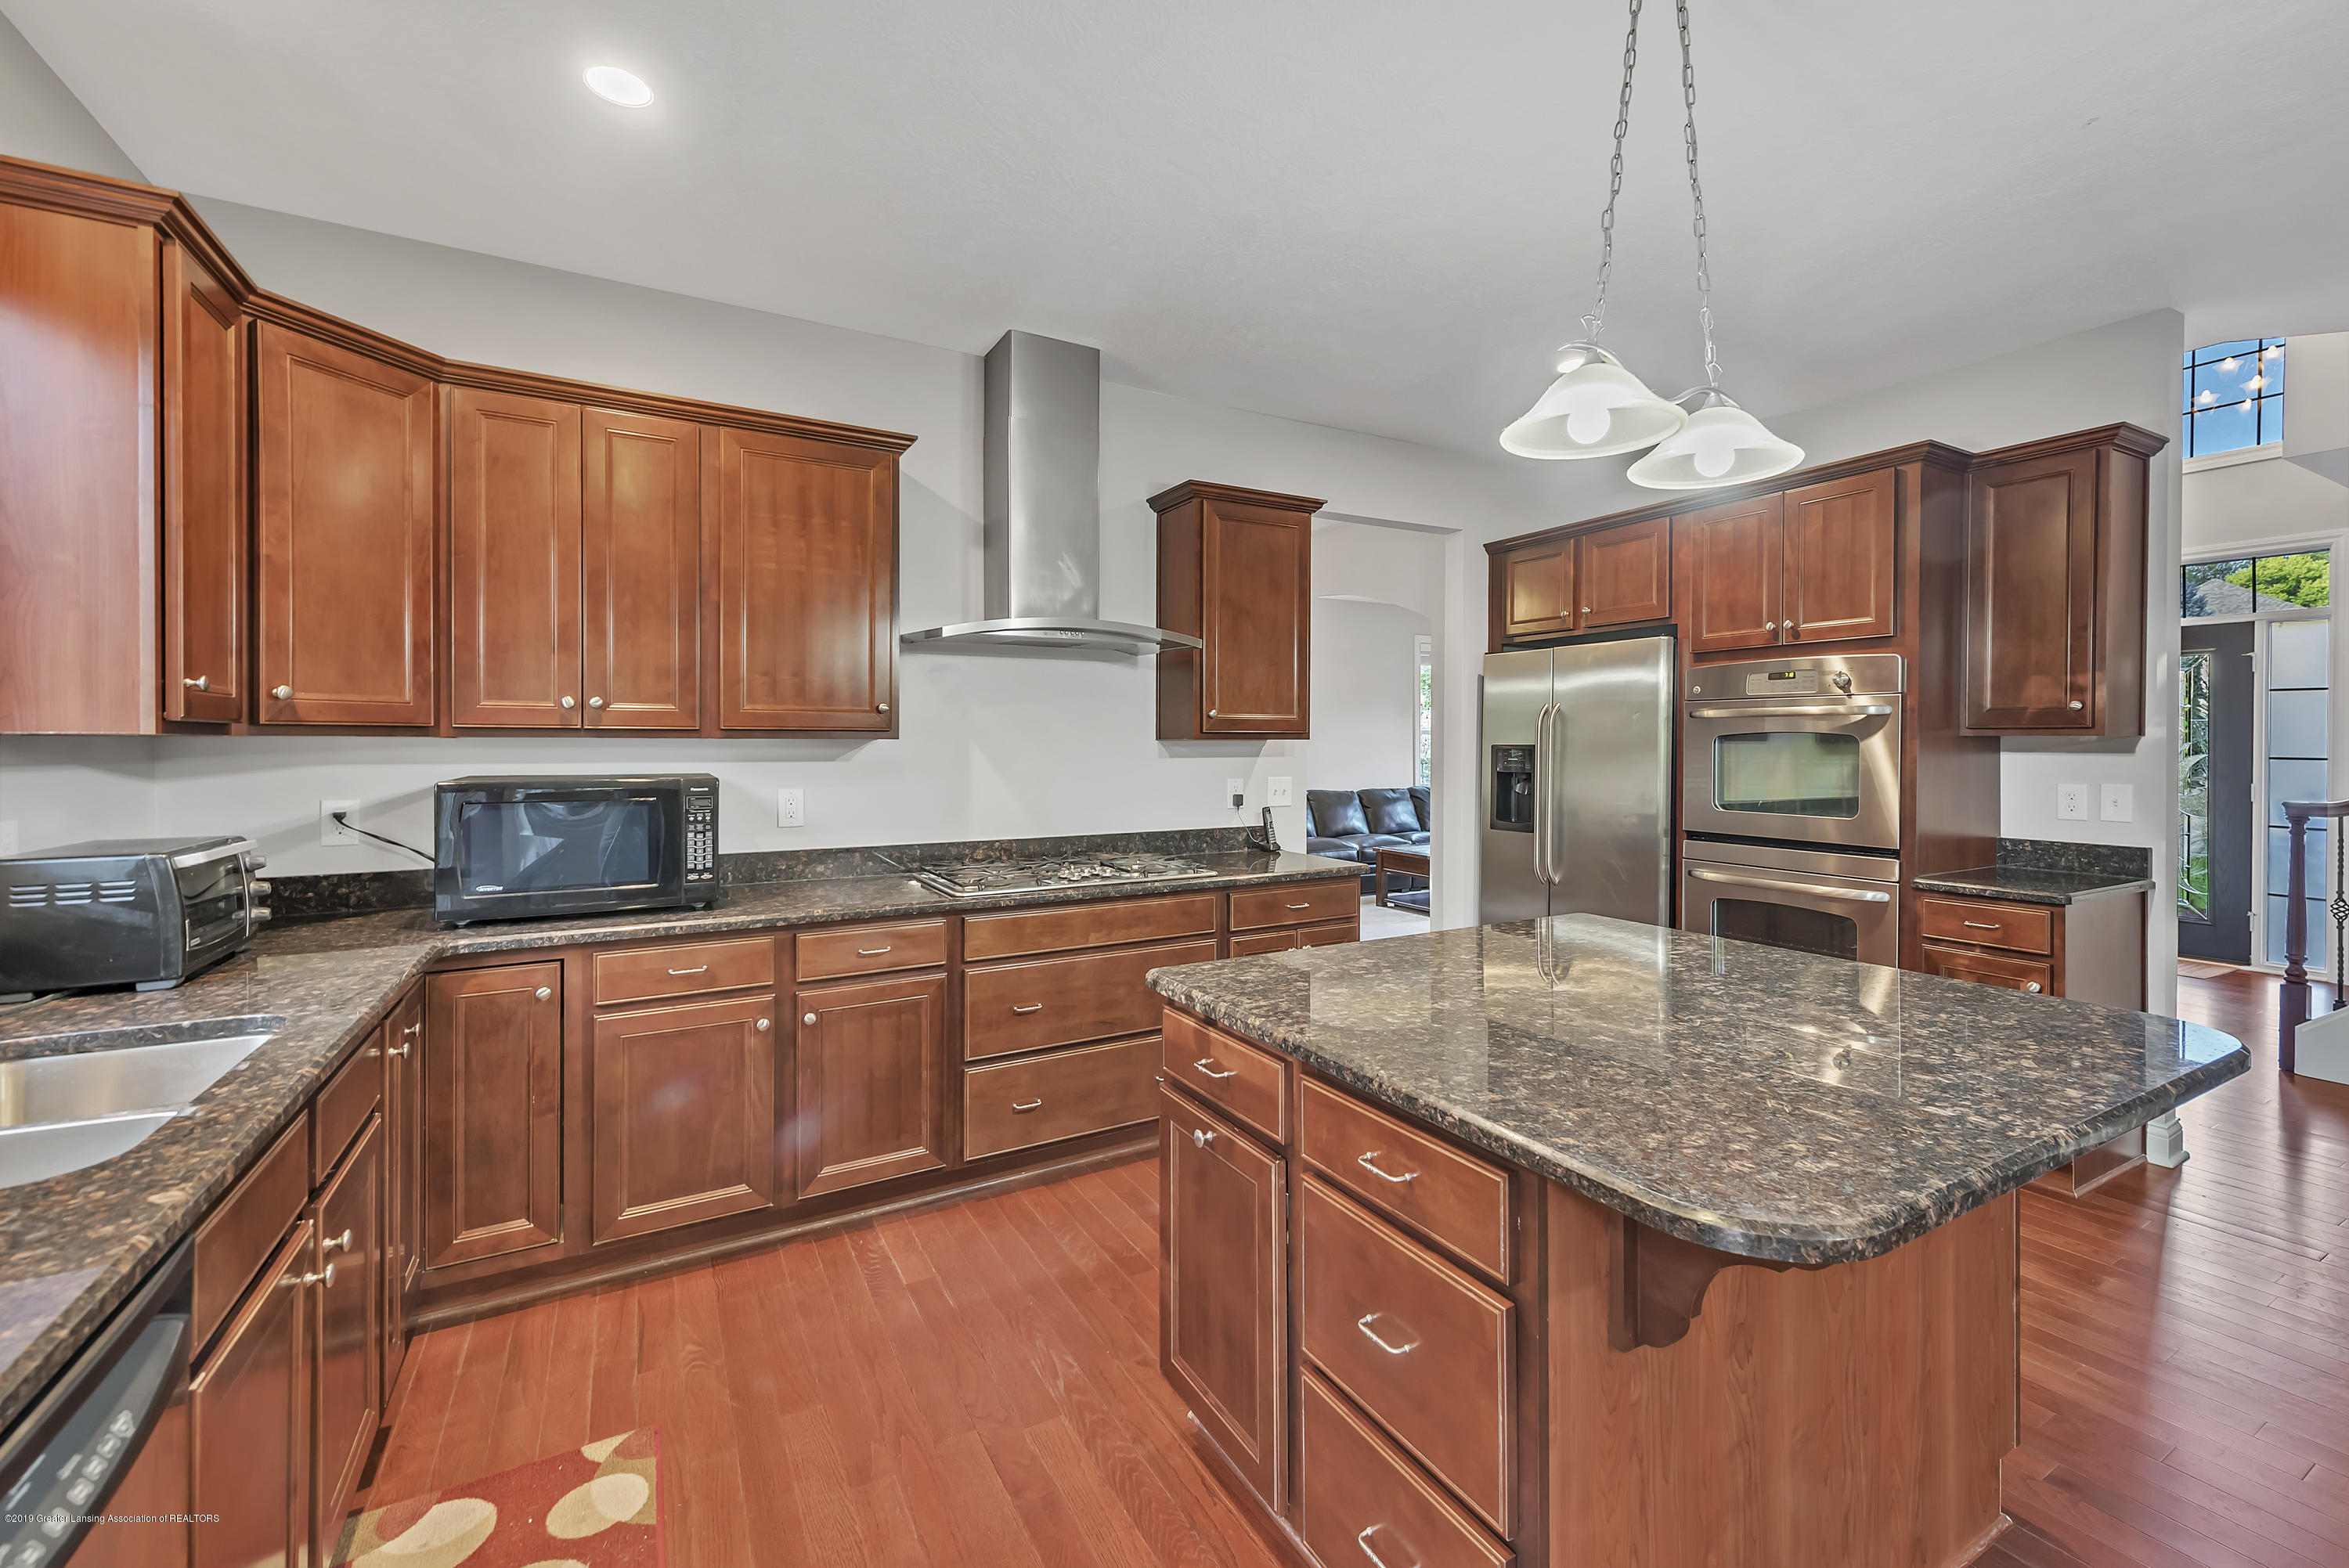 4229 Rain Forest Cir - 4229-Rainforest-Circle-Okemos-MI-windows - 14